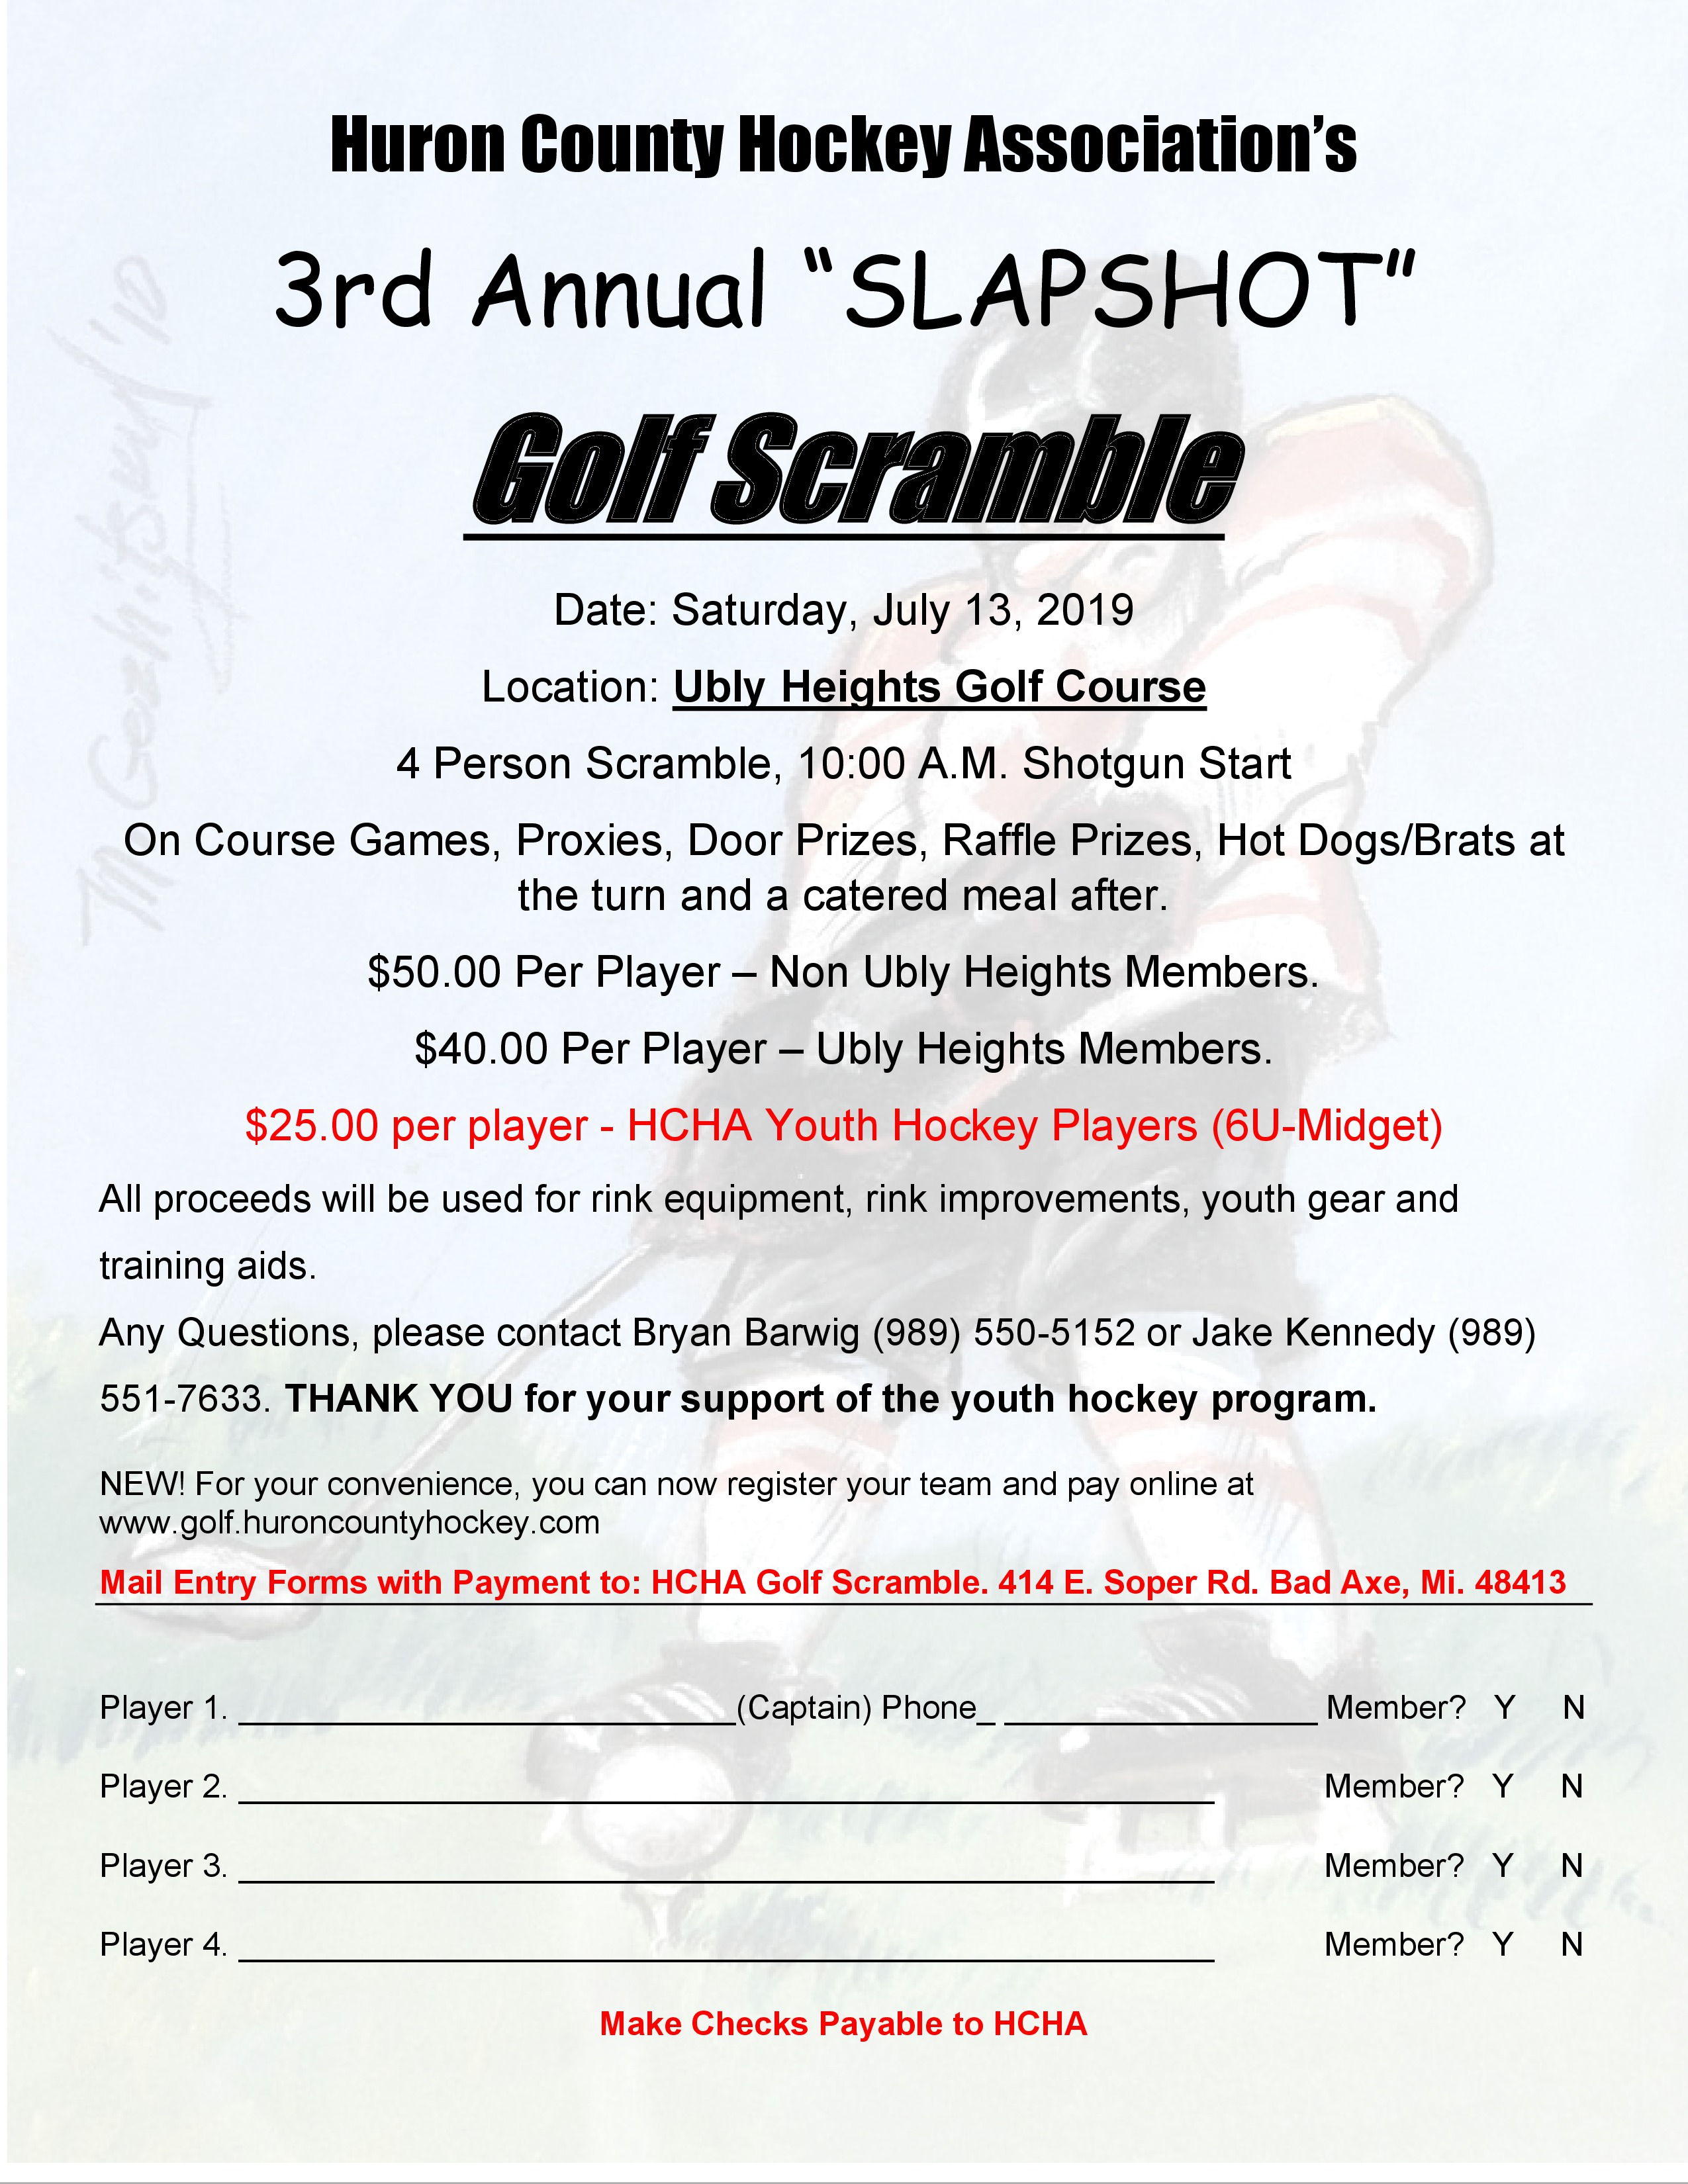 2019 Golf Scramble | Huron County Hockey Association